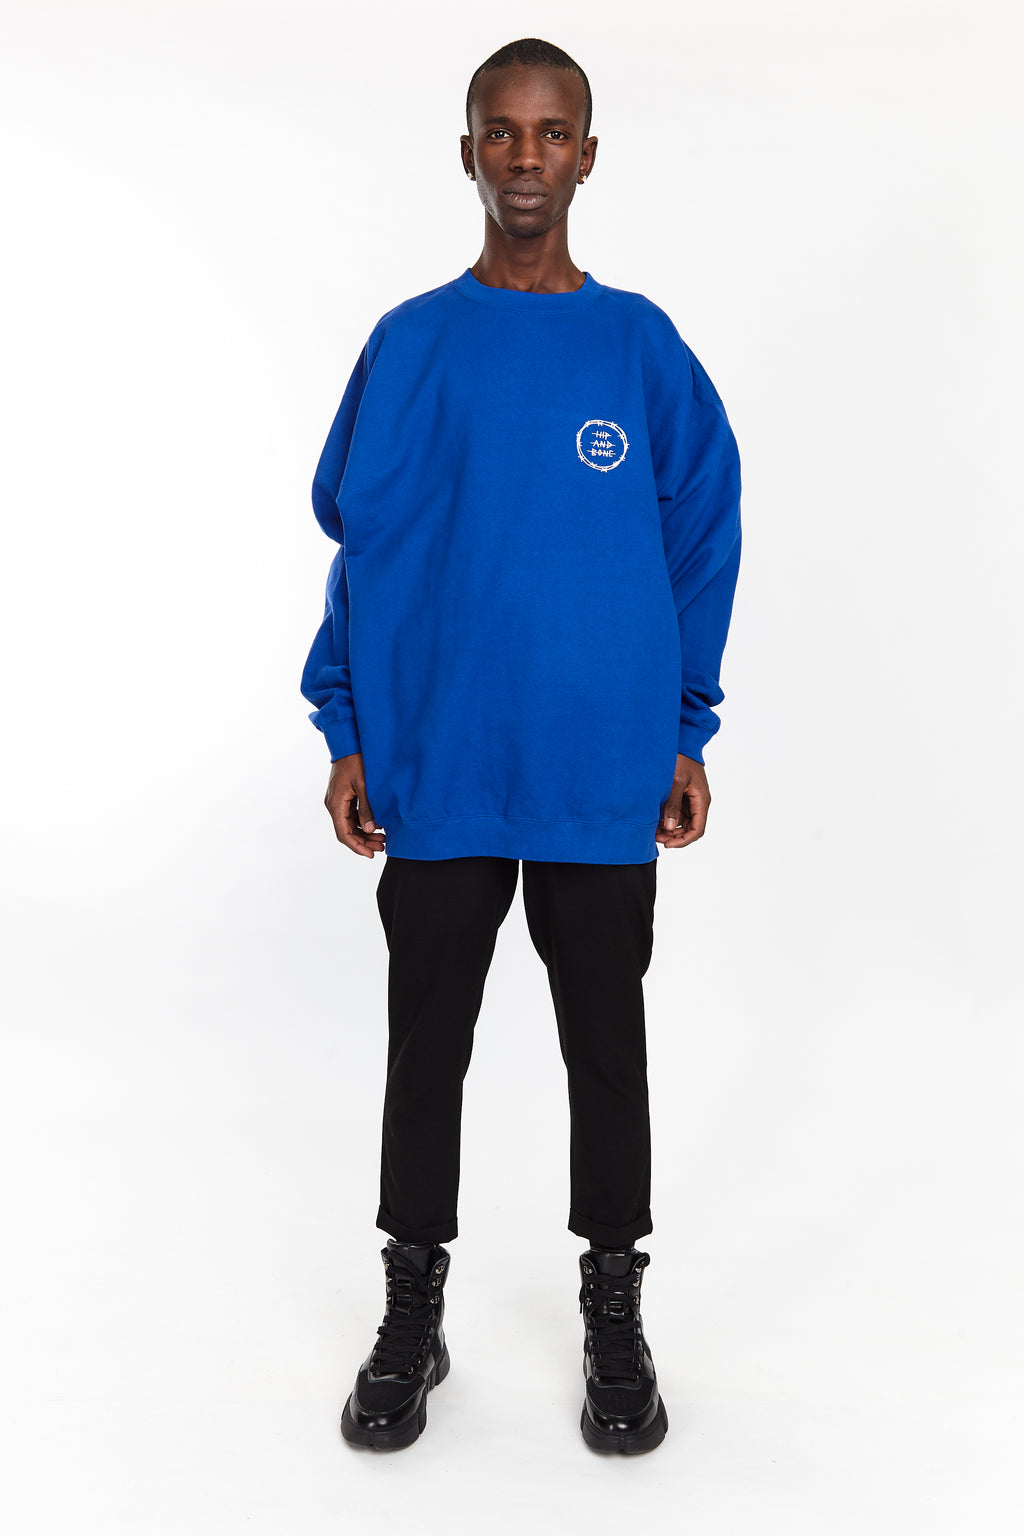 VICIOUS CIRCLE CREW ROYAL BLUE - HIP AND BONE